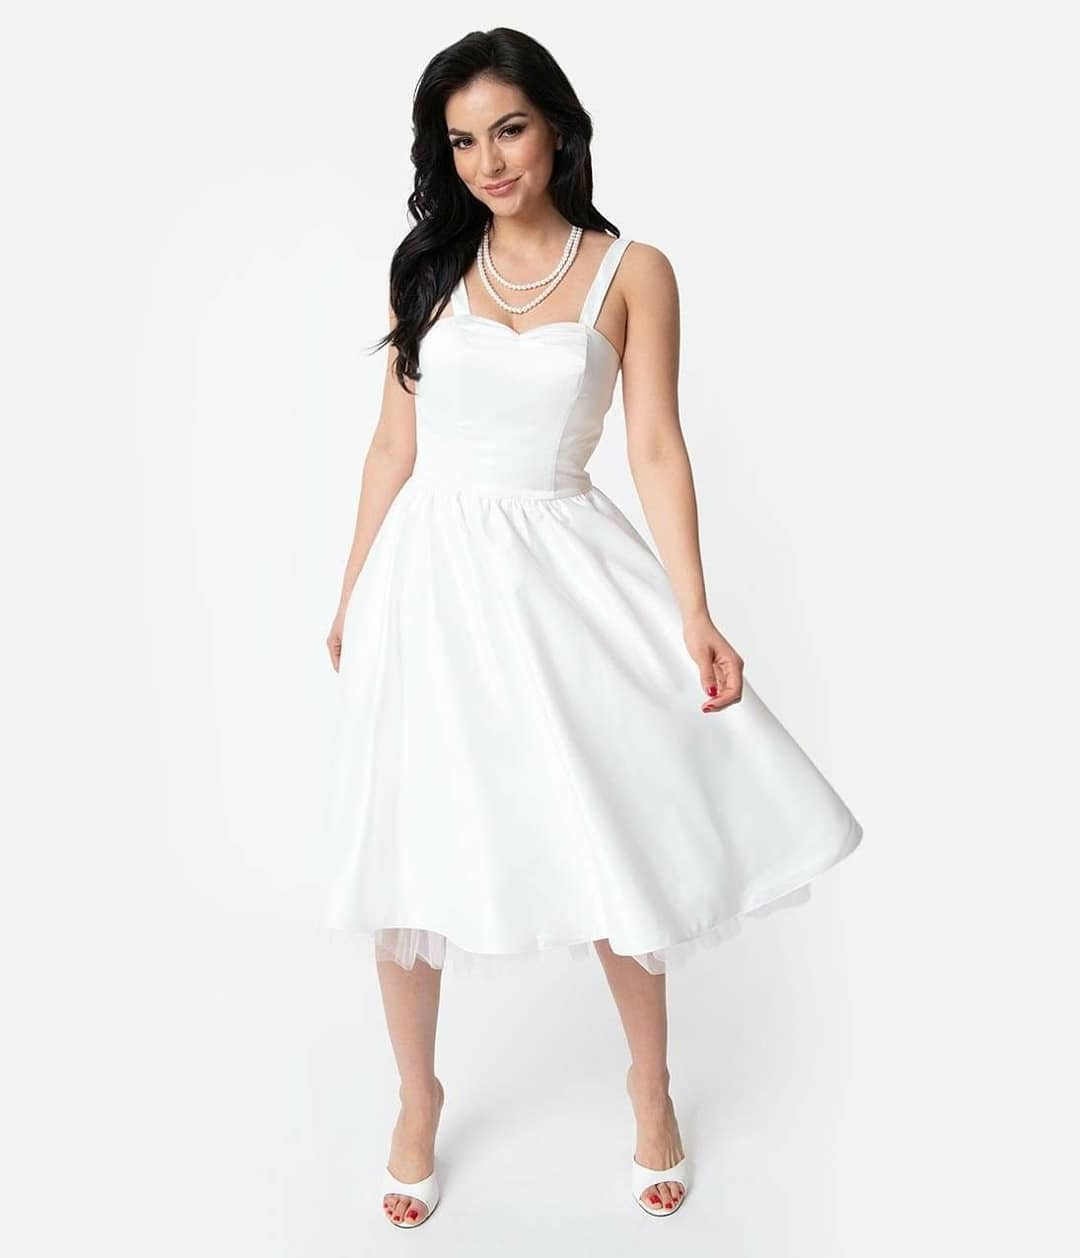 Say yes to your style. Removable straps allow for versatile versions of this tea-length wedding dress. From ceremony to reception it